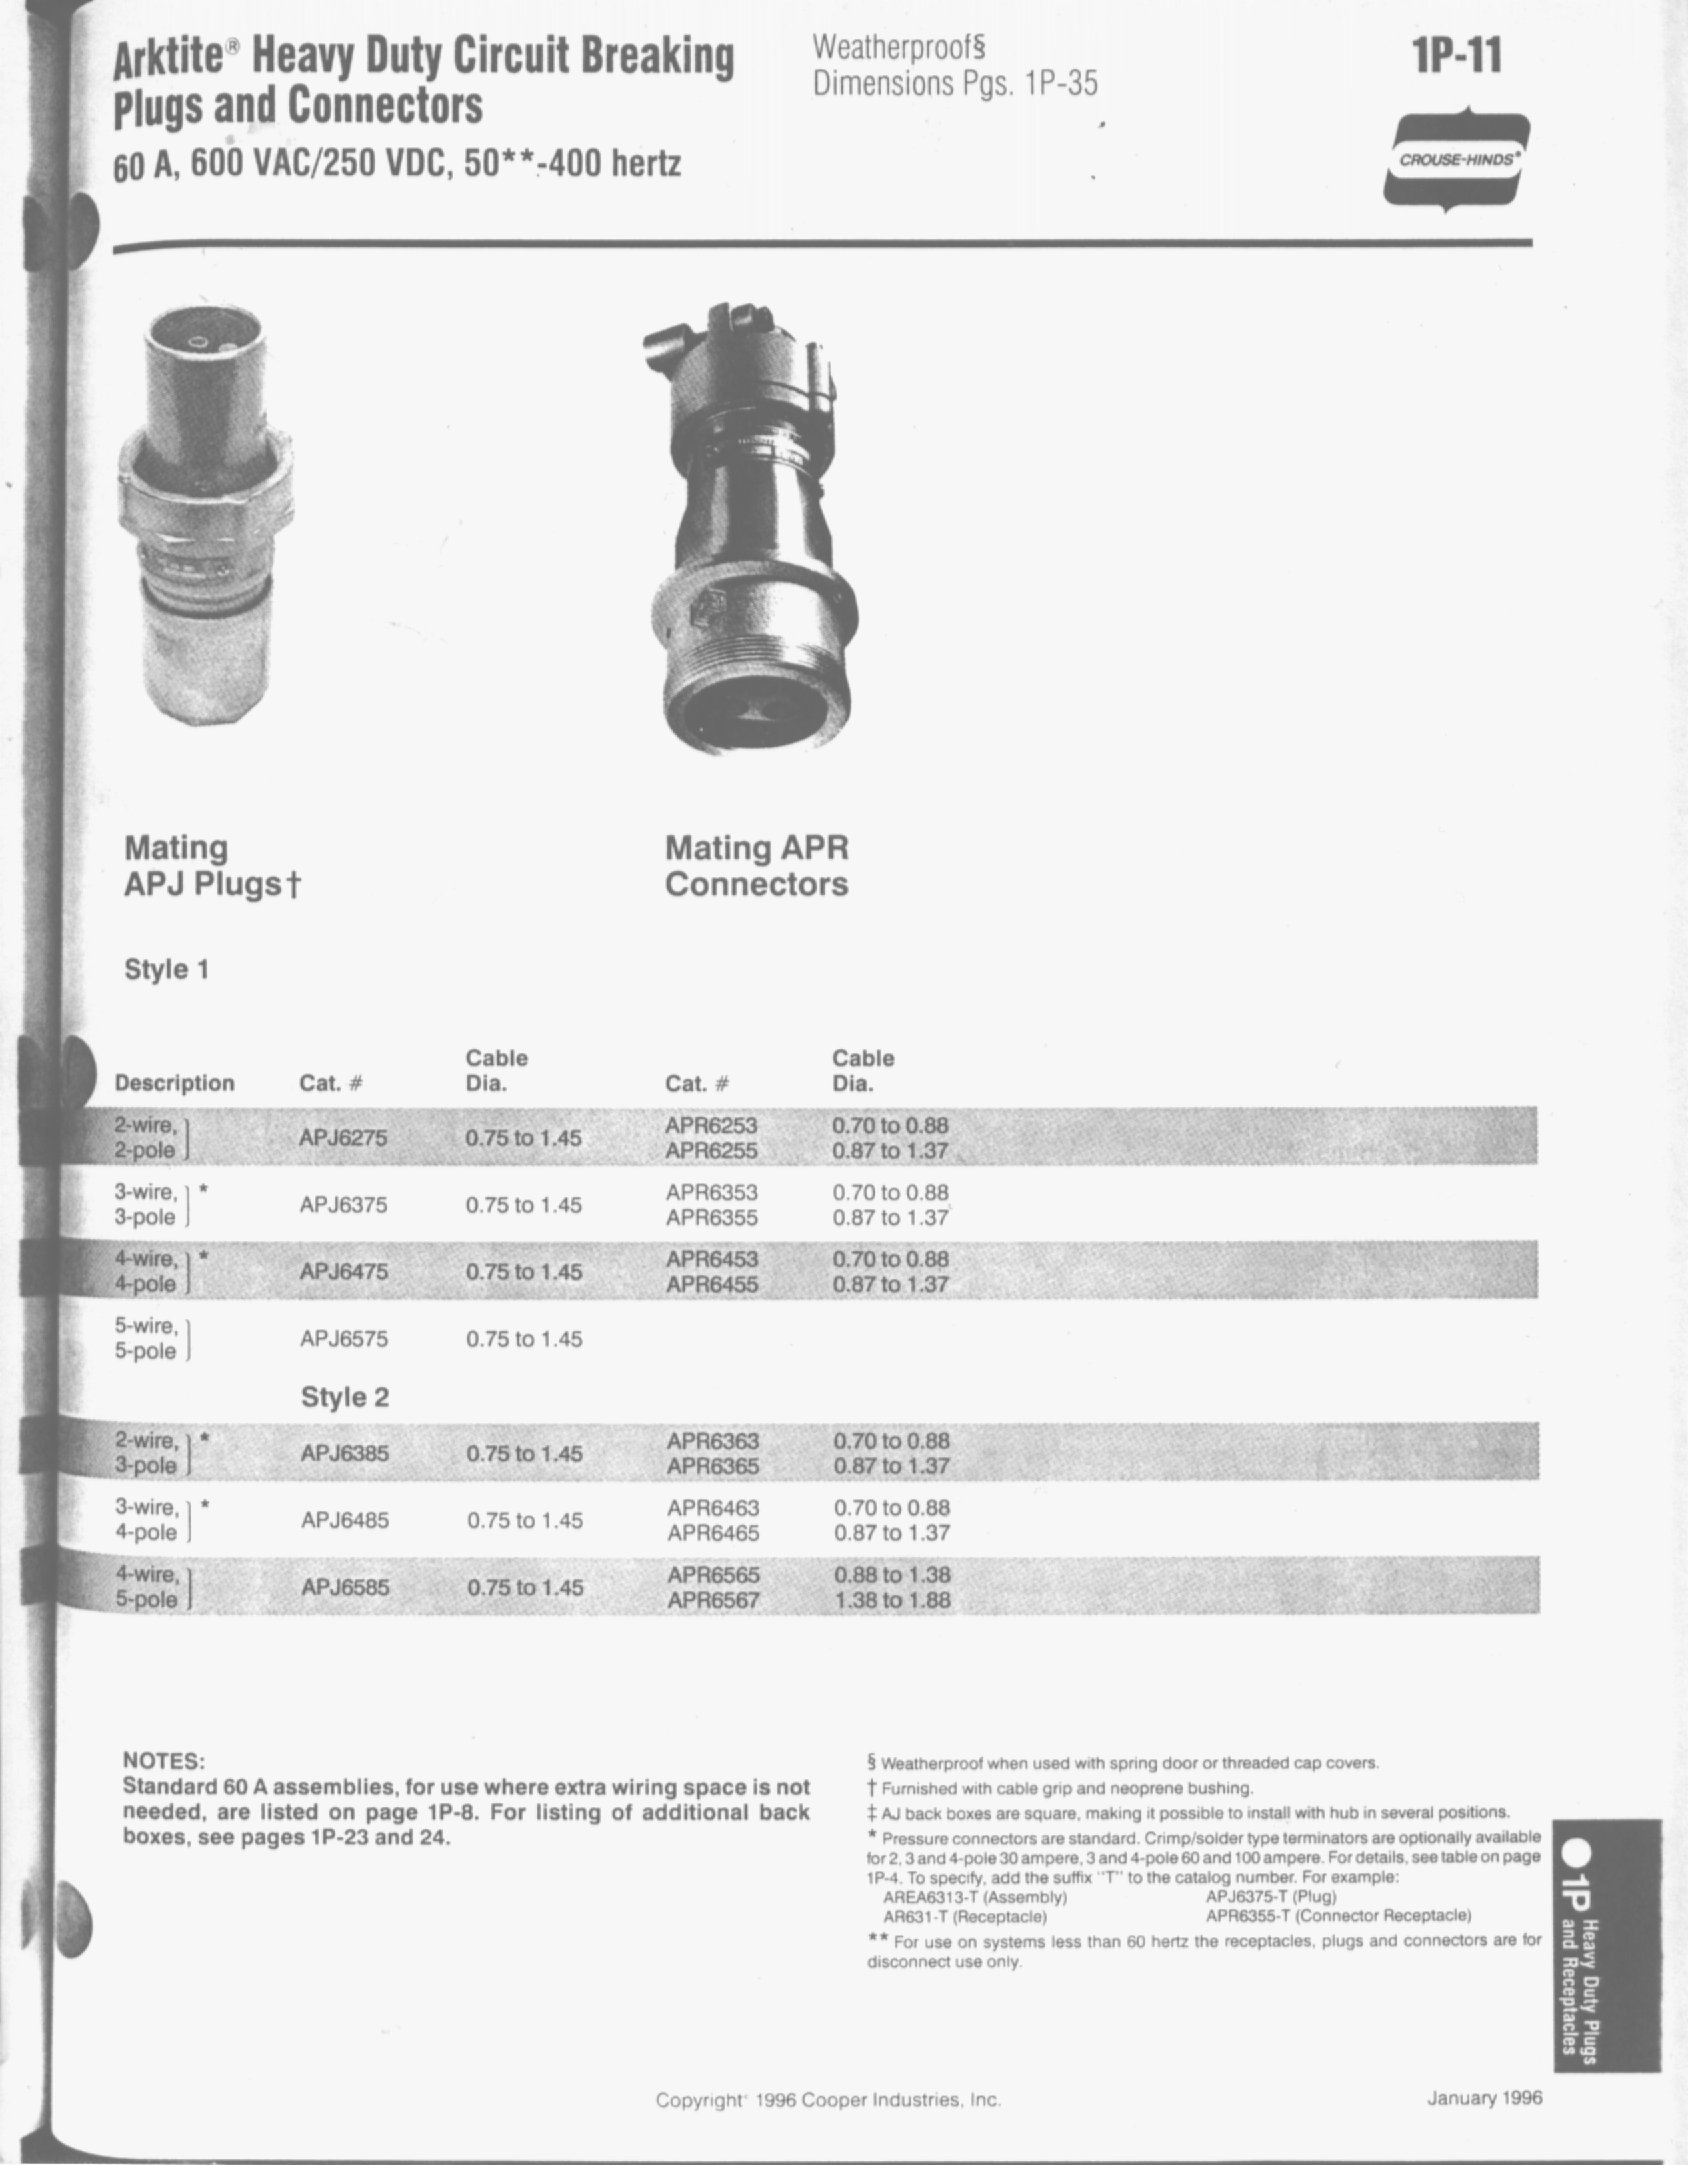 M44-Series Truck Parts Cross-Reference – Mark's Tech Journal